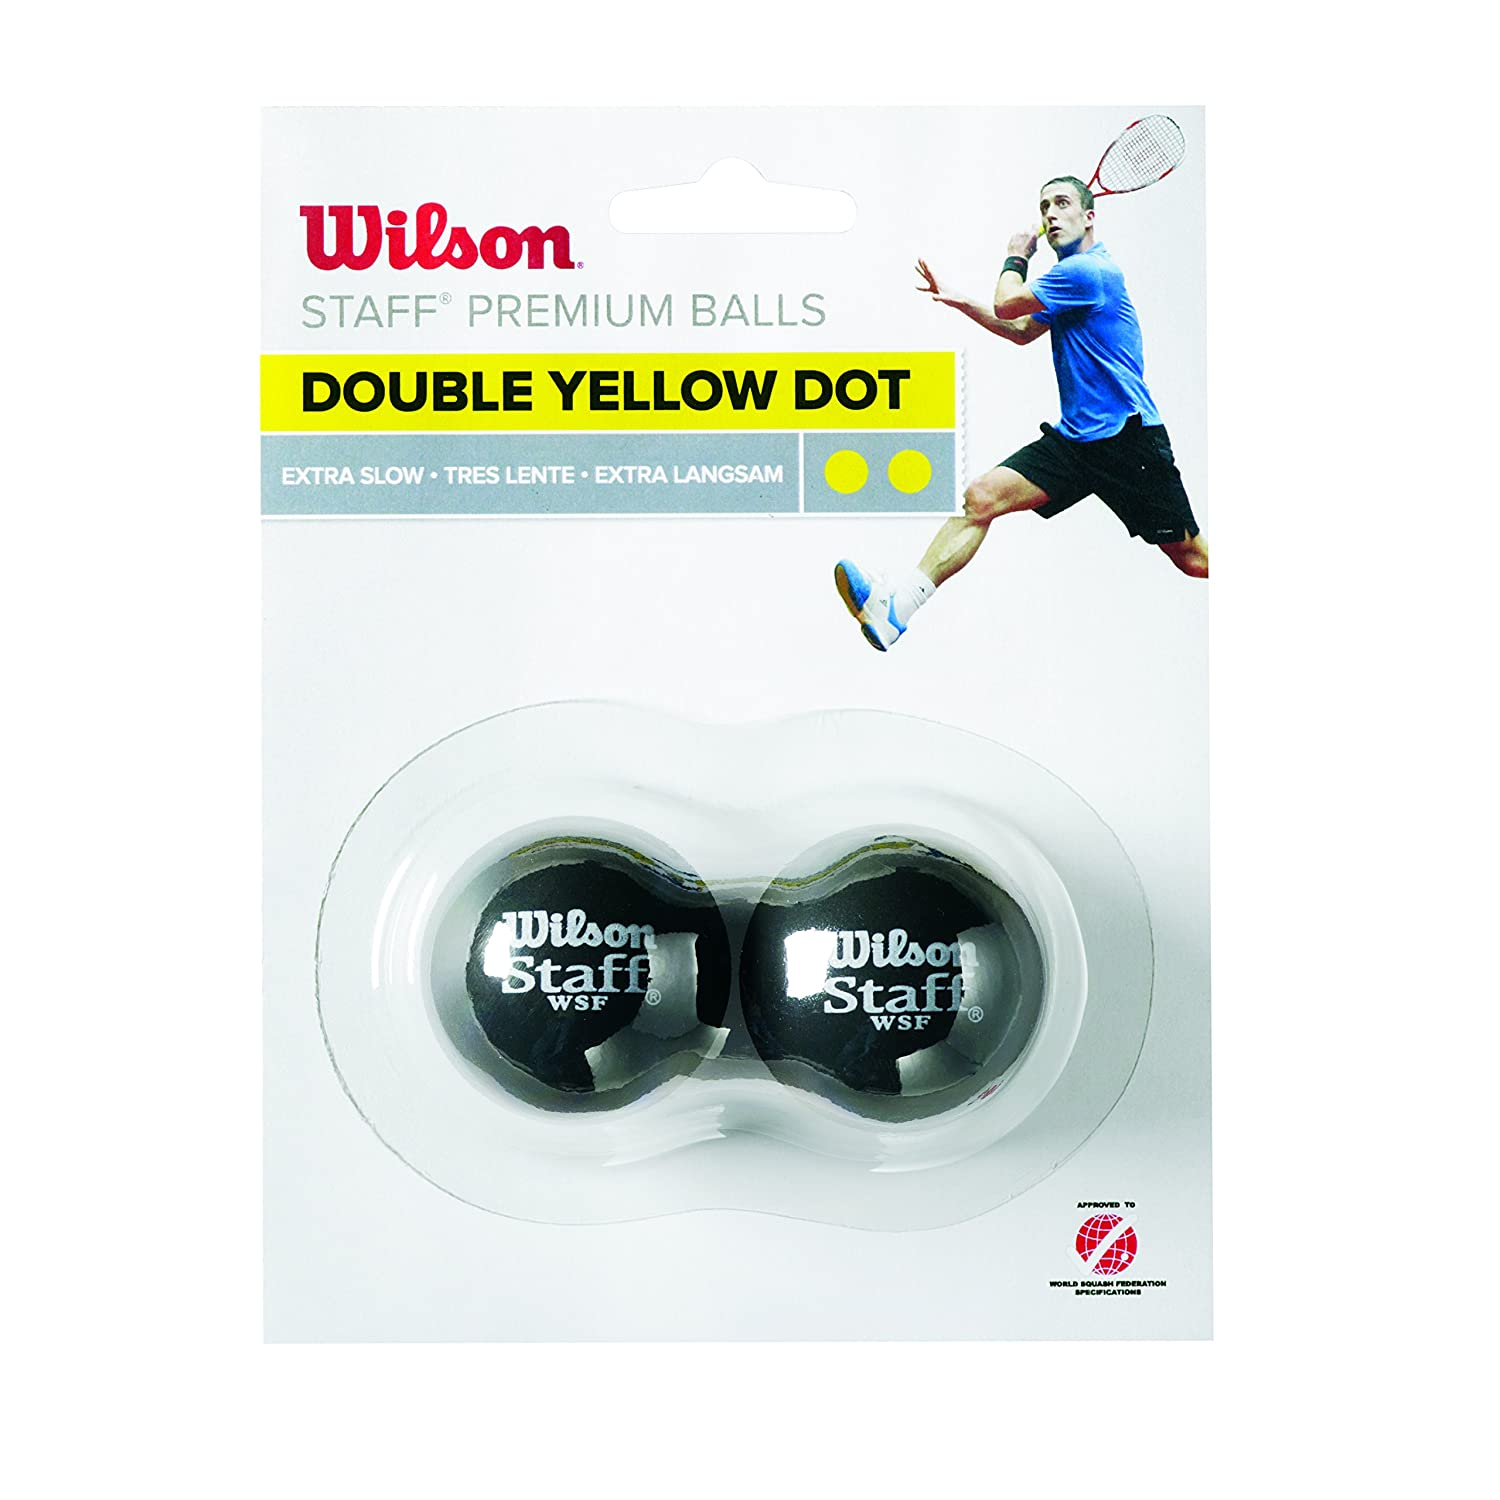 Wilson Staff Squash Balls  Extra Slow (Competitors), Black (Double Yellow Dot), Pack of 2